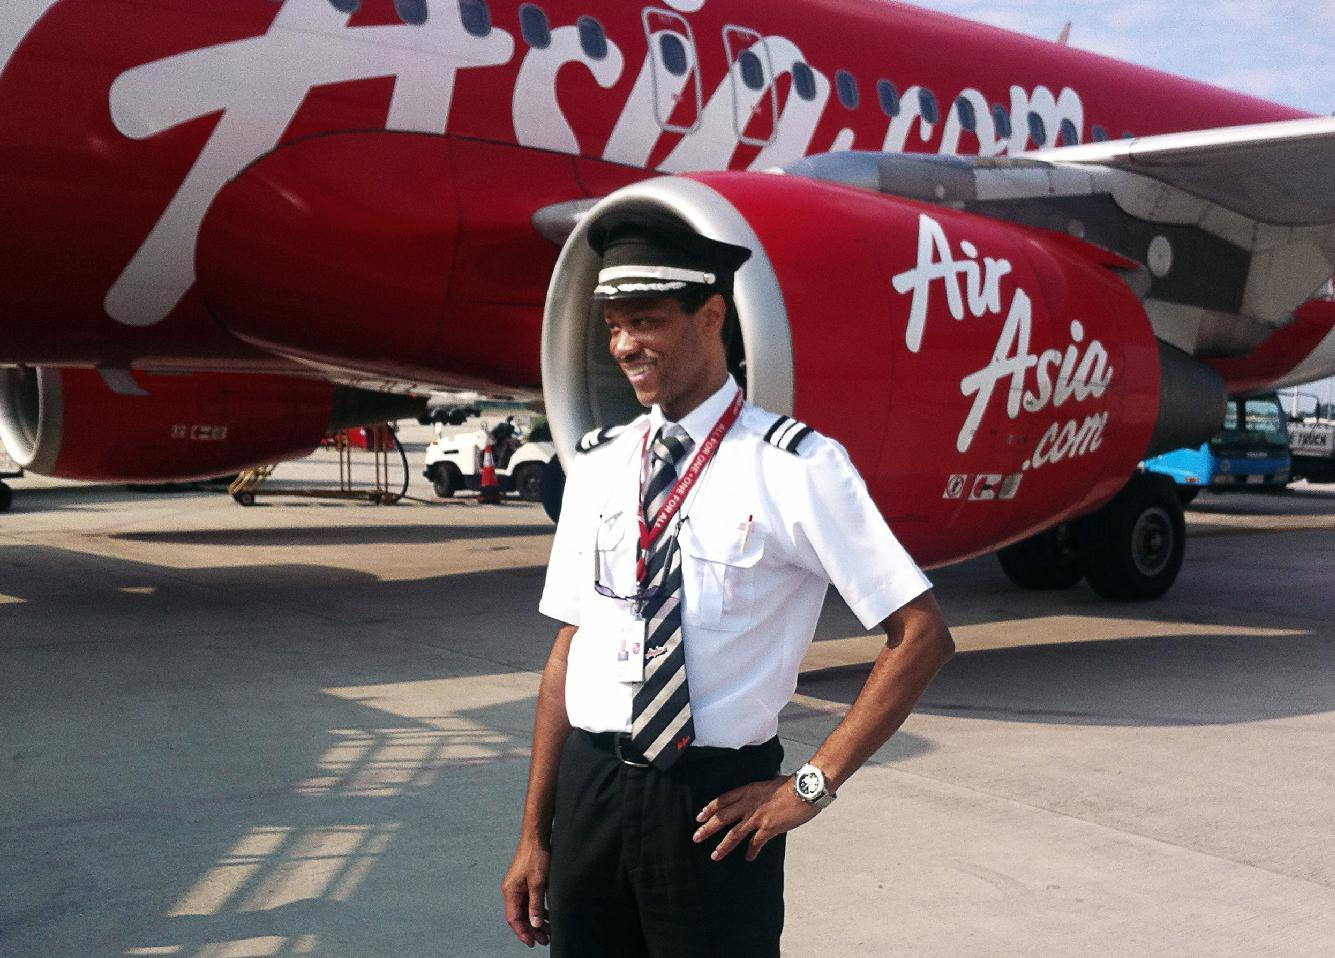 French judge to probe AirAsia crash